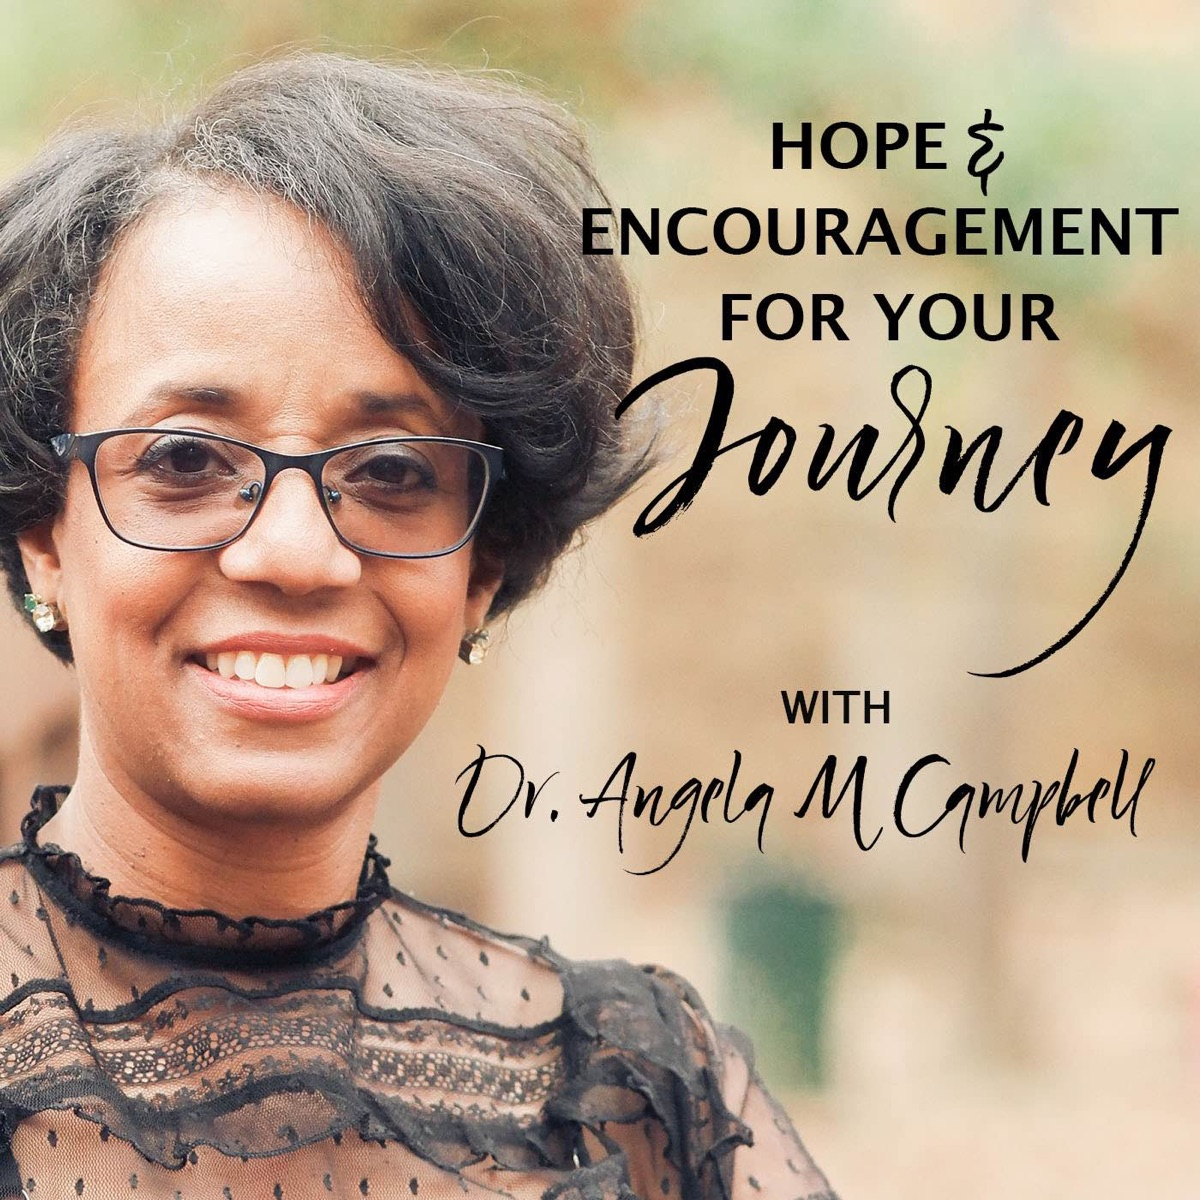 Hope and Encouragement for Your Journey